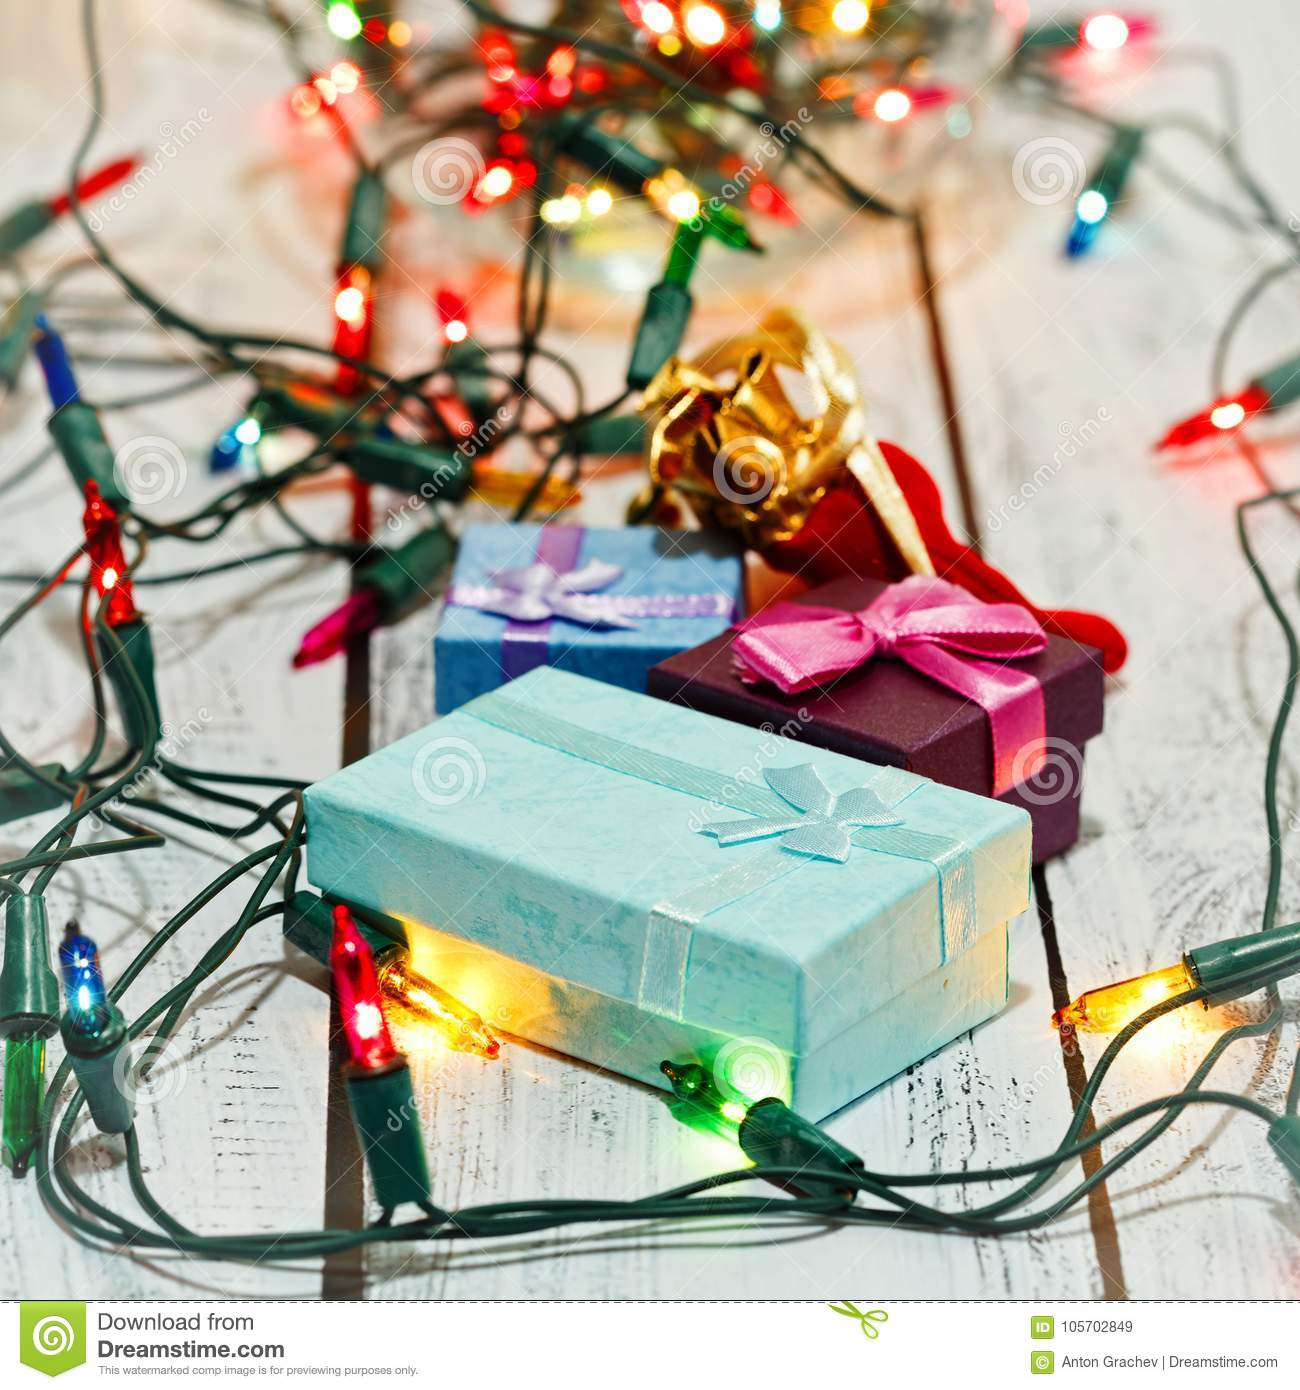 New Year And Christmas Gifts, Square Capture Stock Image - Image of ...